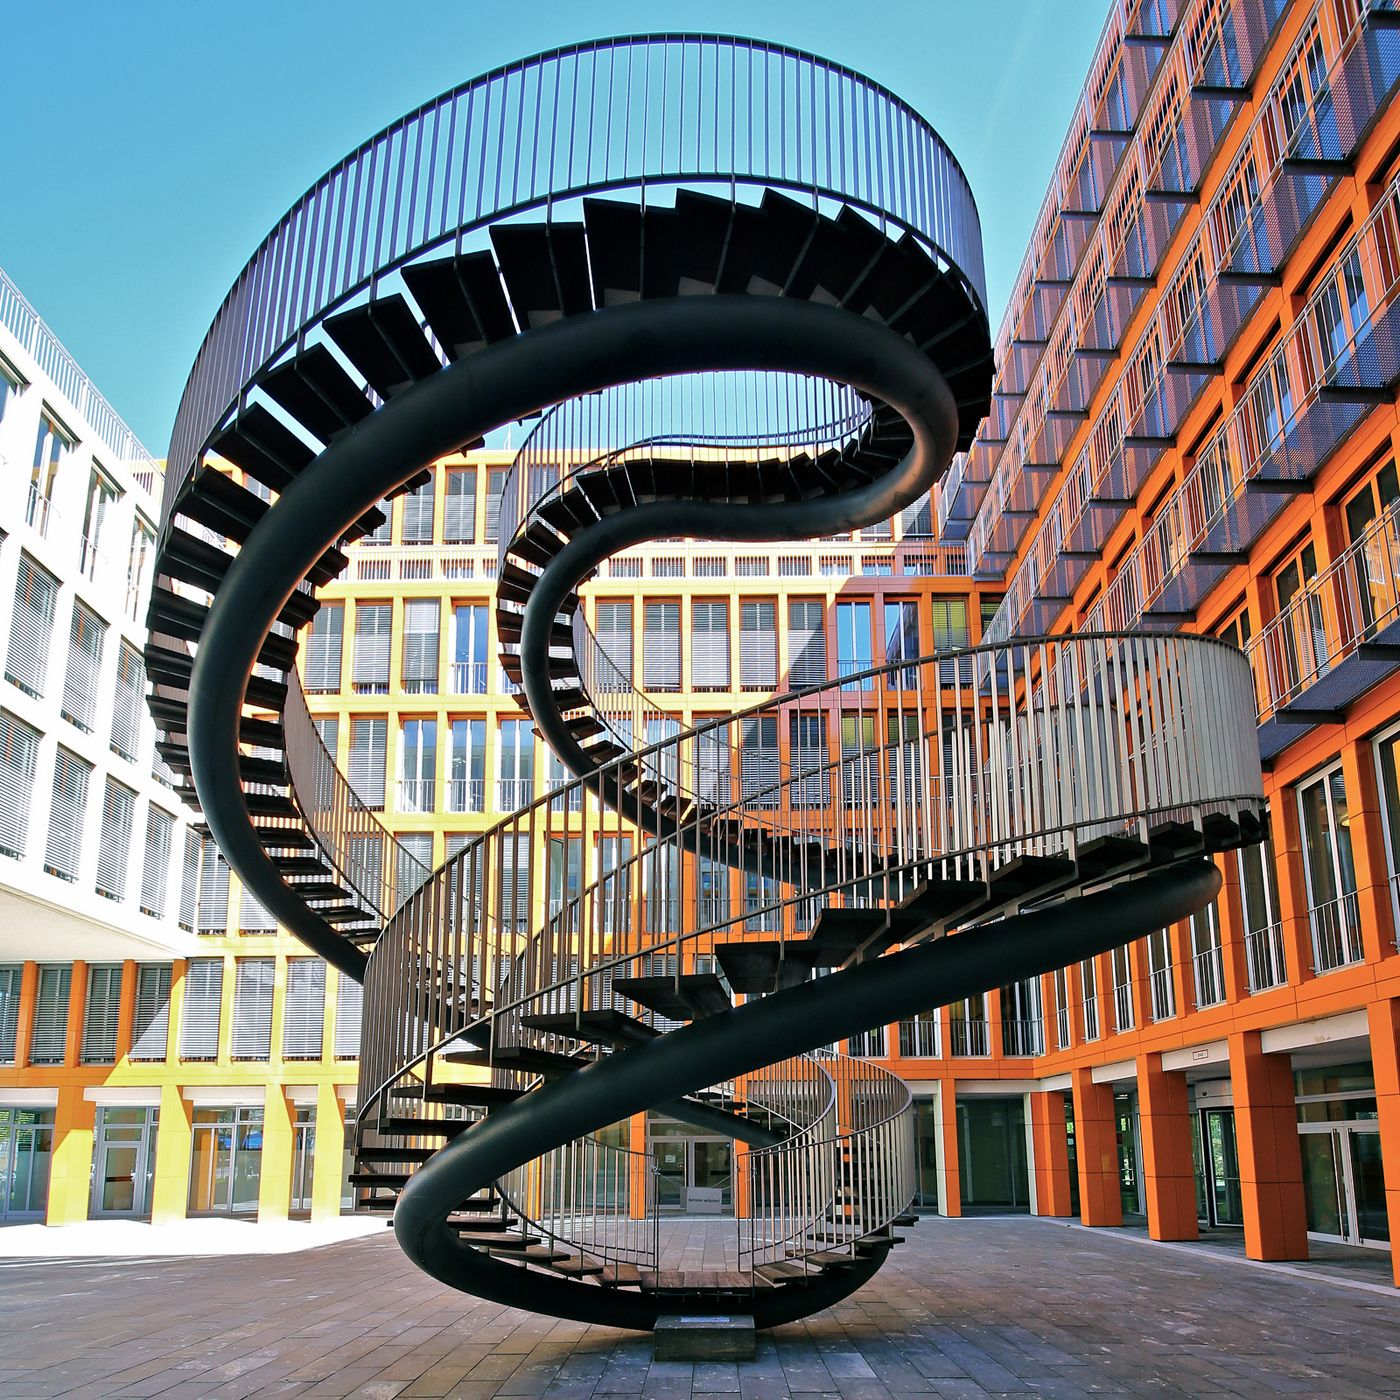 A Collection Of The Best Stairs Blogs. Get The Top Stories On Stairs In Your